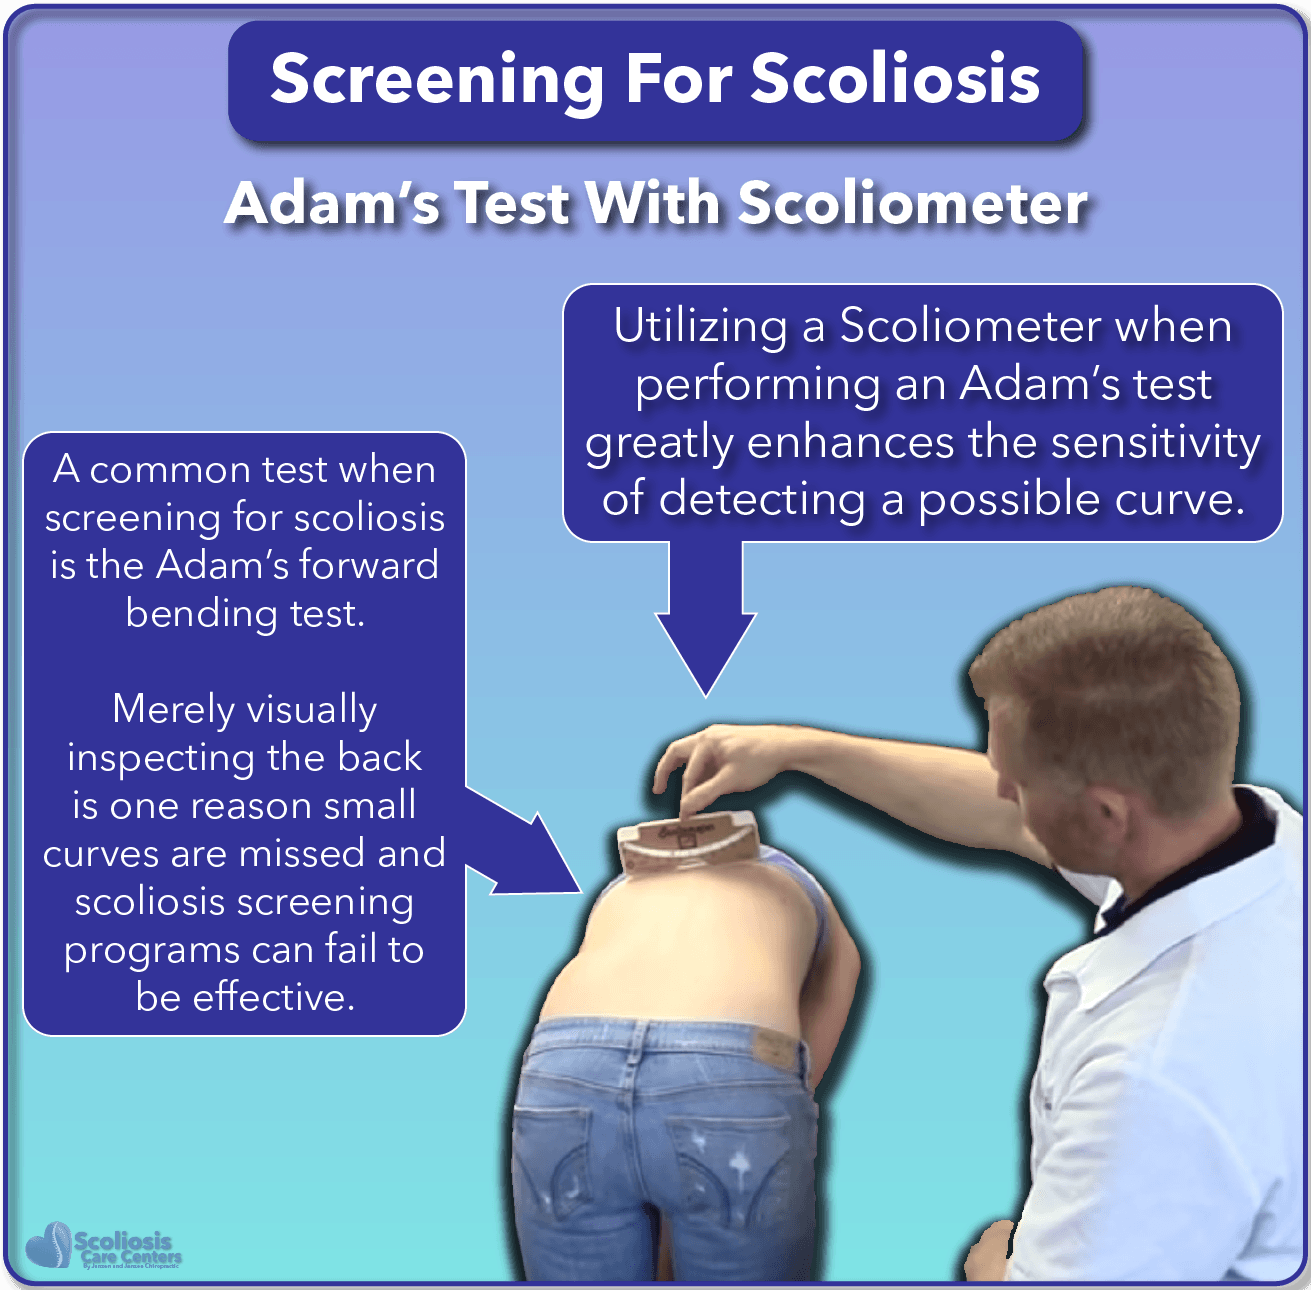 SureScreen scoliosis screening also using Adam's test